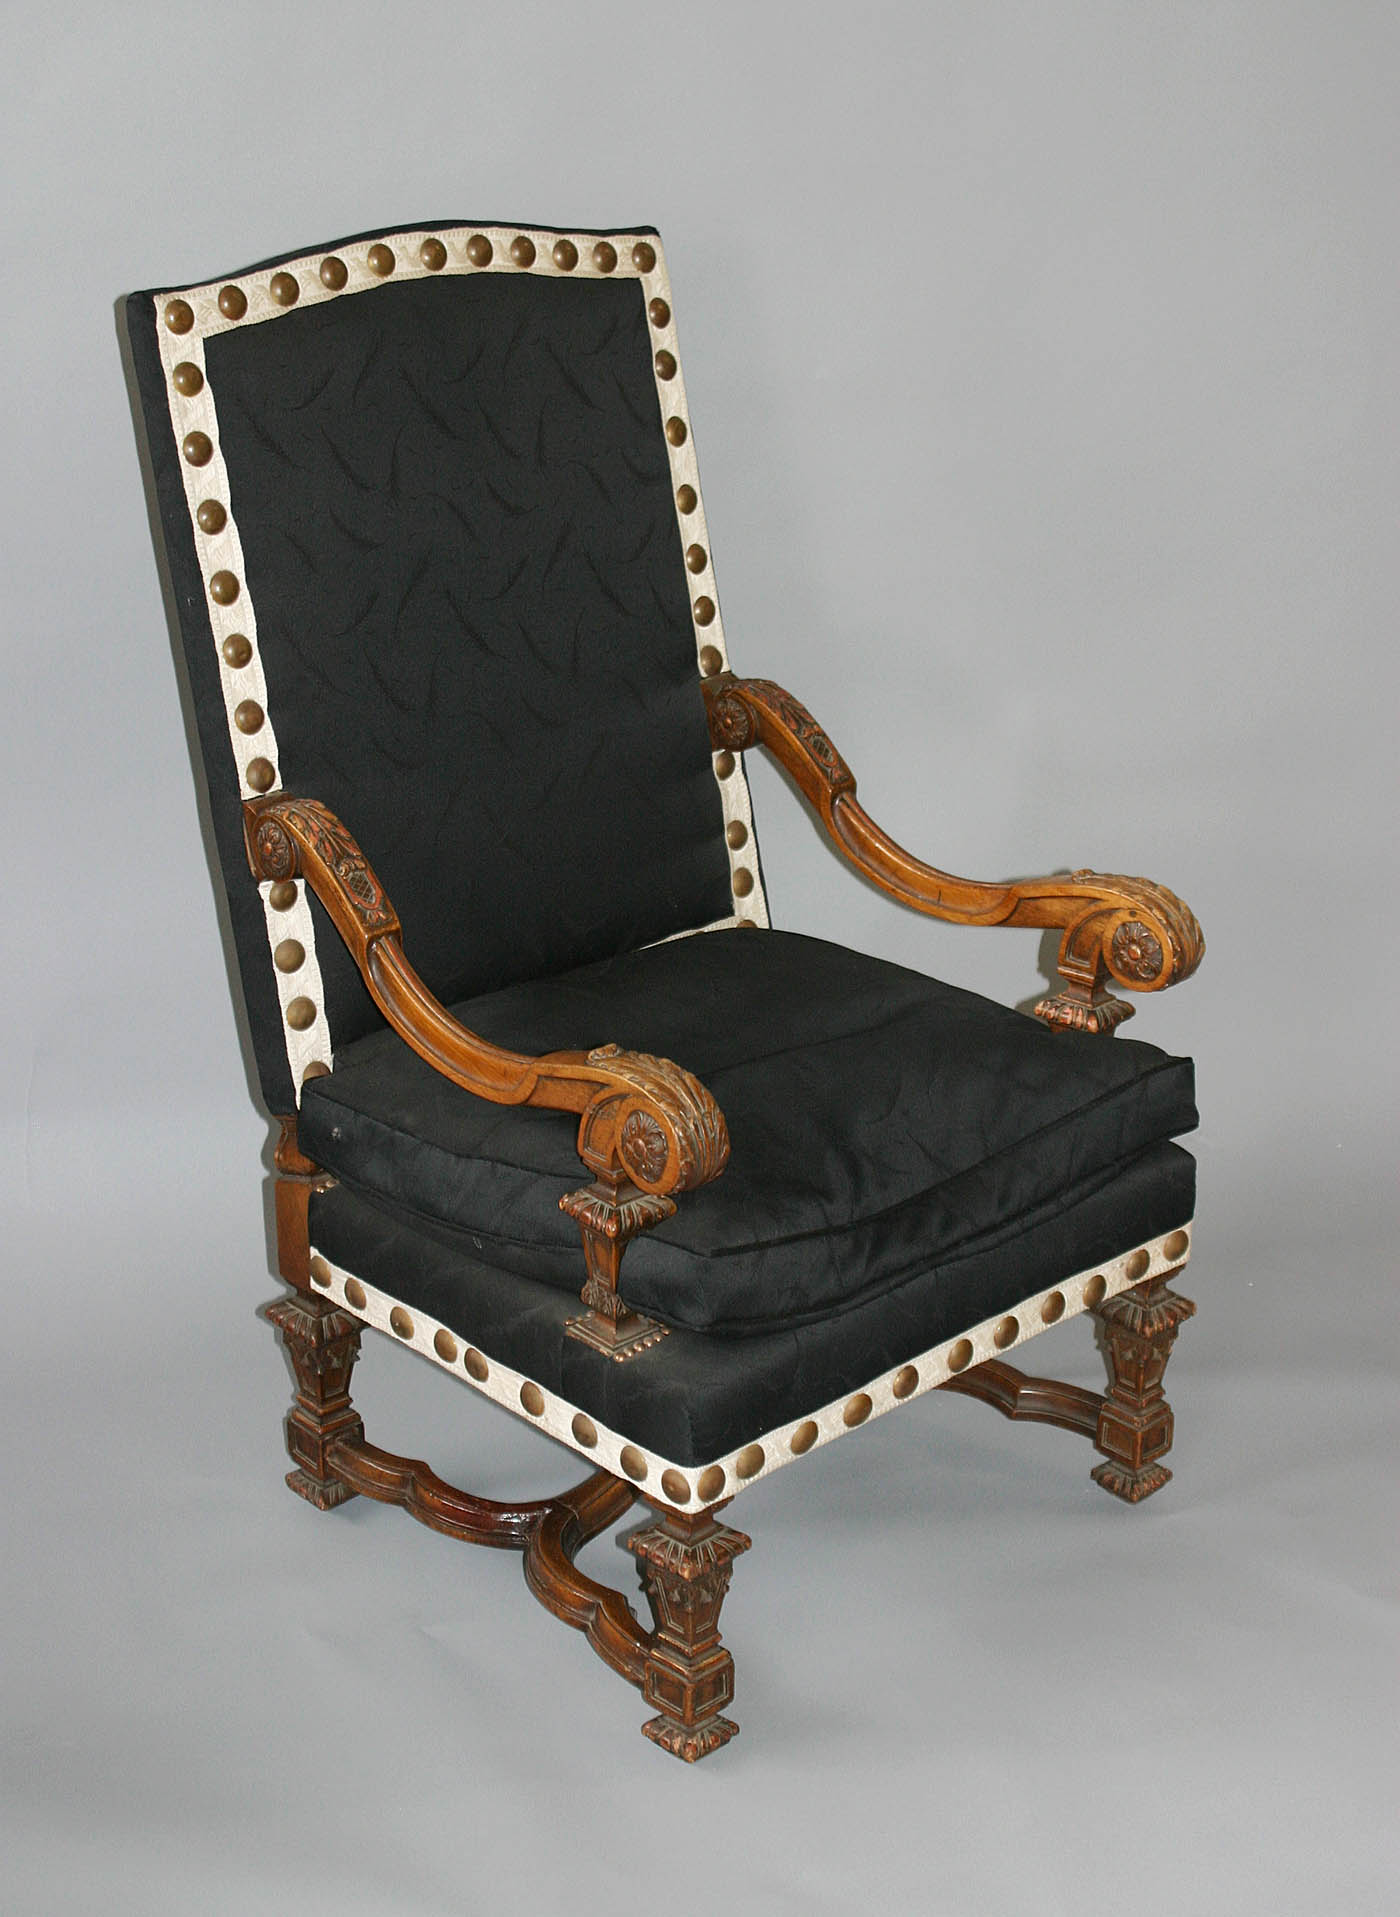 pair of french louis xiv style fauteuils a la reine. Black Bedroom Furniture Sets. Home Design Ideas